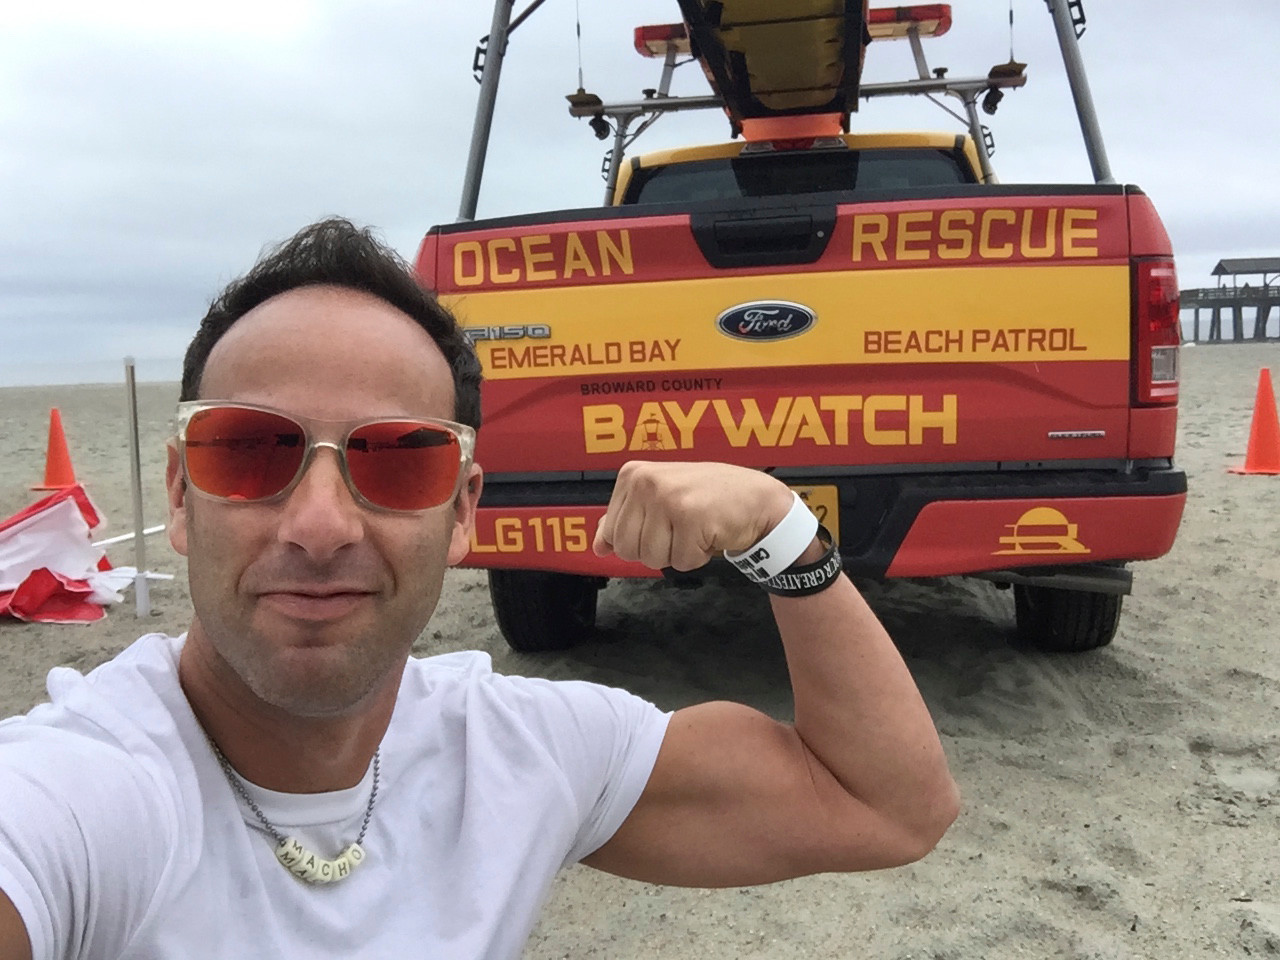 Hewlett resident Cary Epstein, a 20-year Jones Beach veteran, was named New York State Lifeguard of the Year.